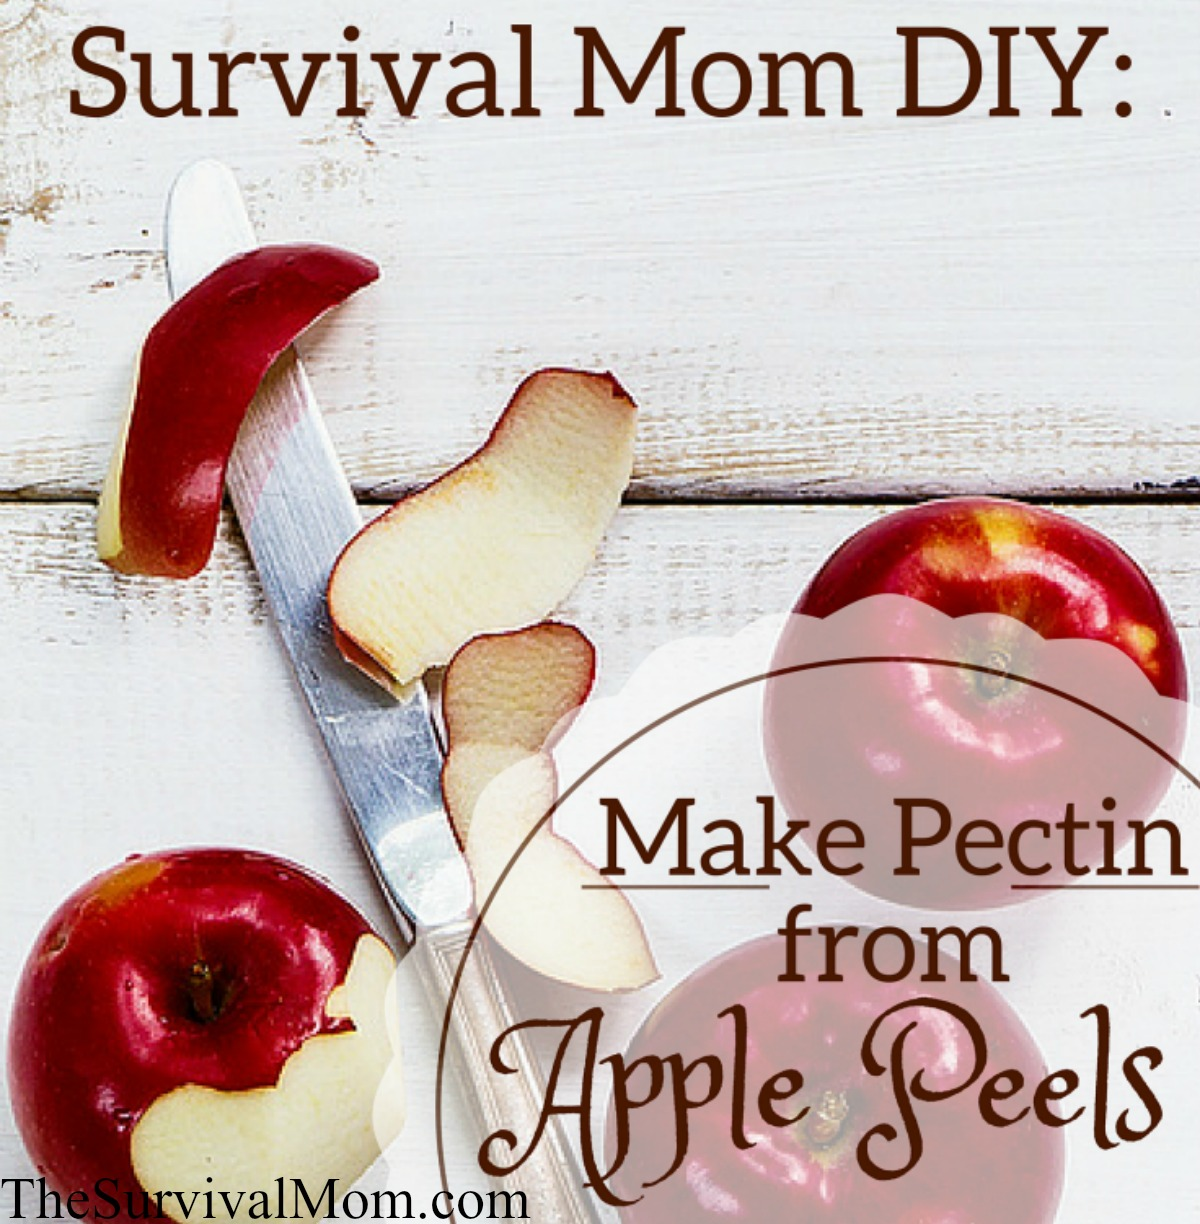 make pectin from apple peel